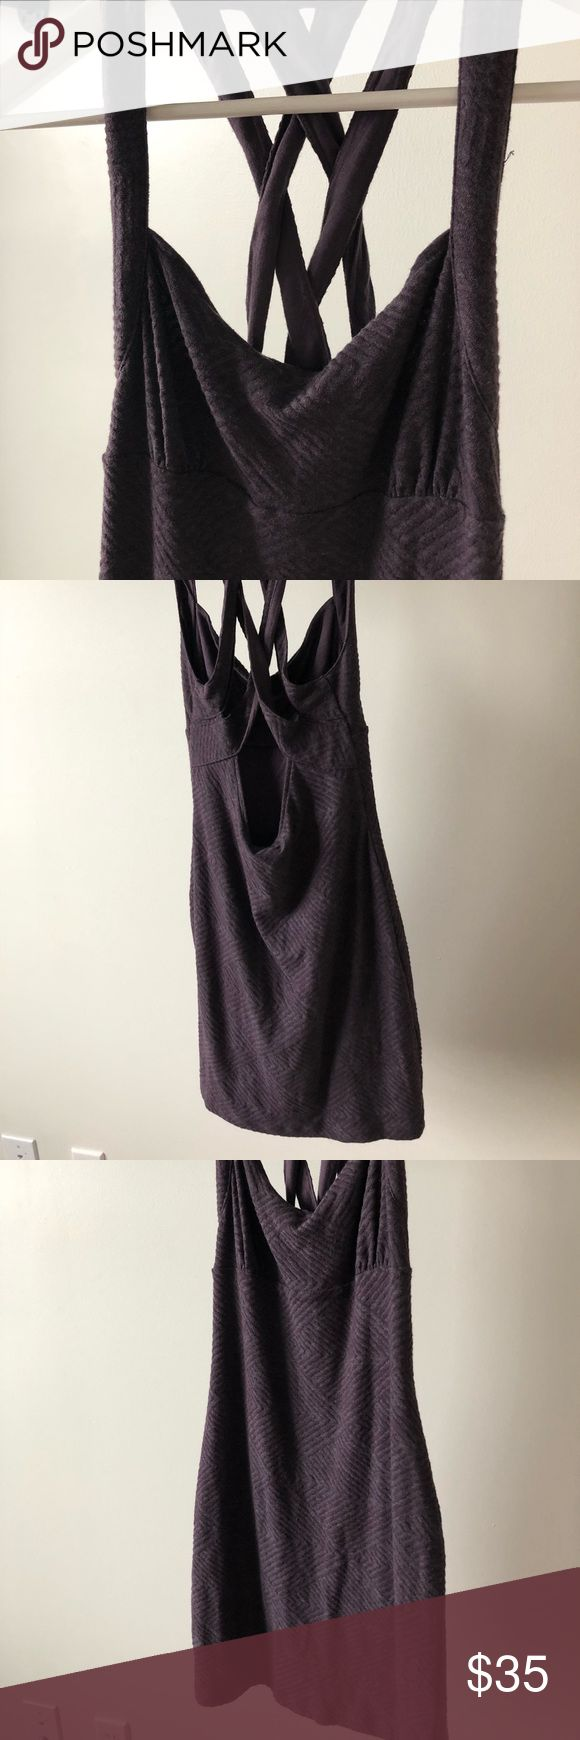 "Free People Textured Purple Body Con Tank Dress S Free People Textured Purple Body Con Tank Dress Size small- Runs small fits like an XS- see measurements for best fit. Mini length Tank top Criss-cross back detail with scoop Scoop neck Empire waist Body-con Fitted silhouette Lined Grayish / Purple coloring  Body: poly/Cotton/rayon Lining: rayon  16"" armpit to armpit 20"" L - measured from empire waist under bust 12.5"" waist Free People Dresses Mini"